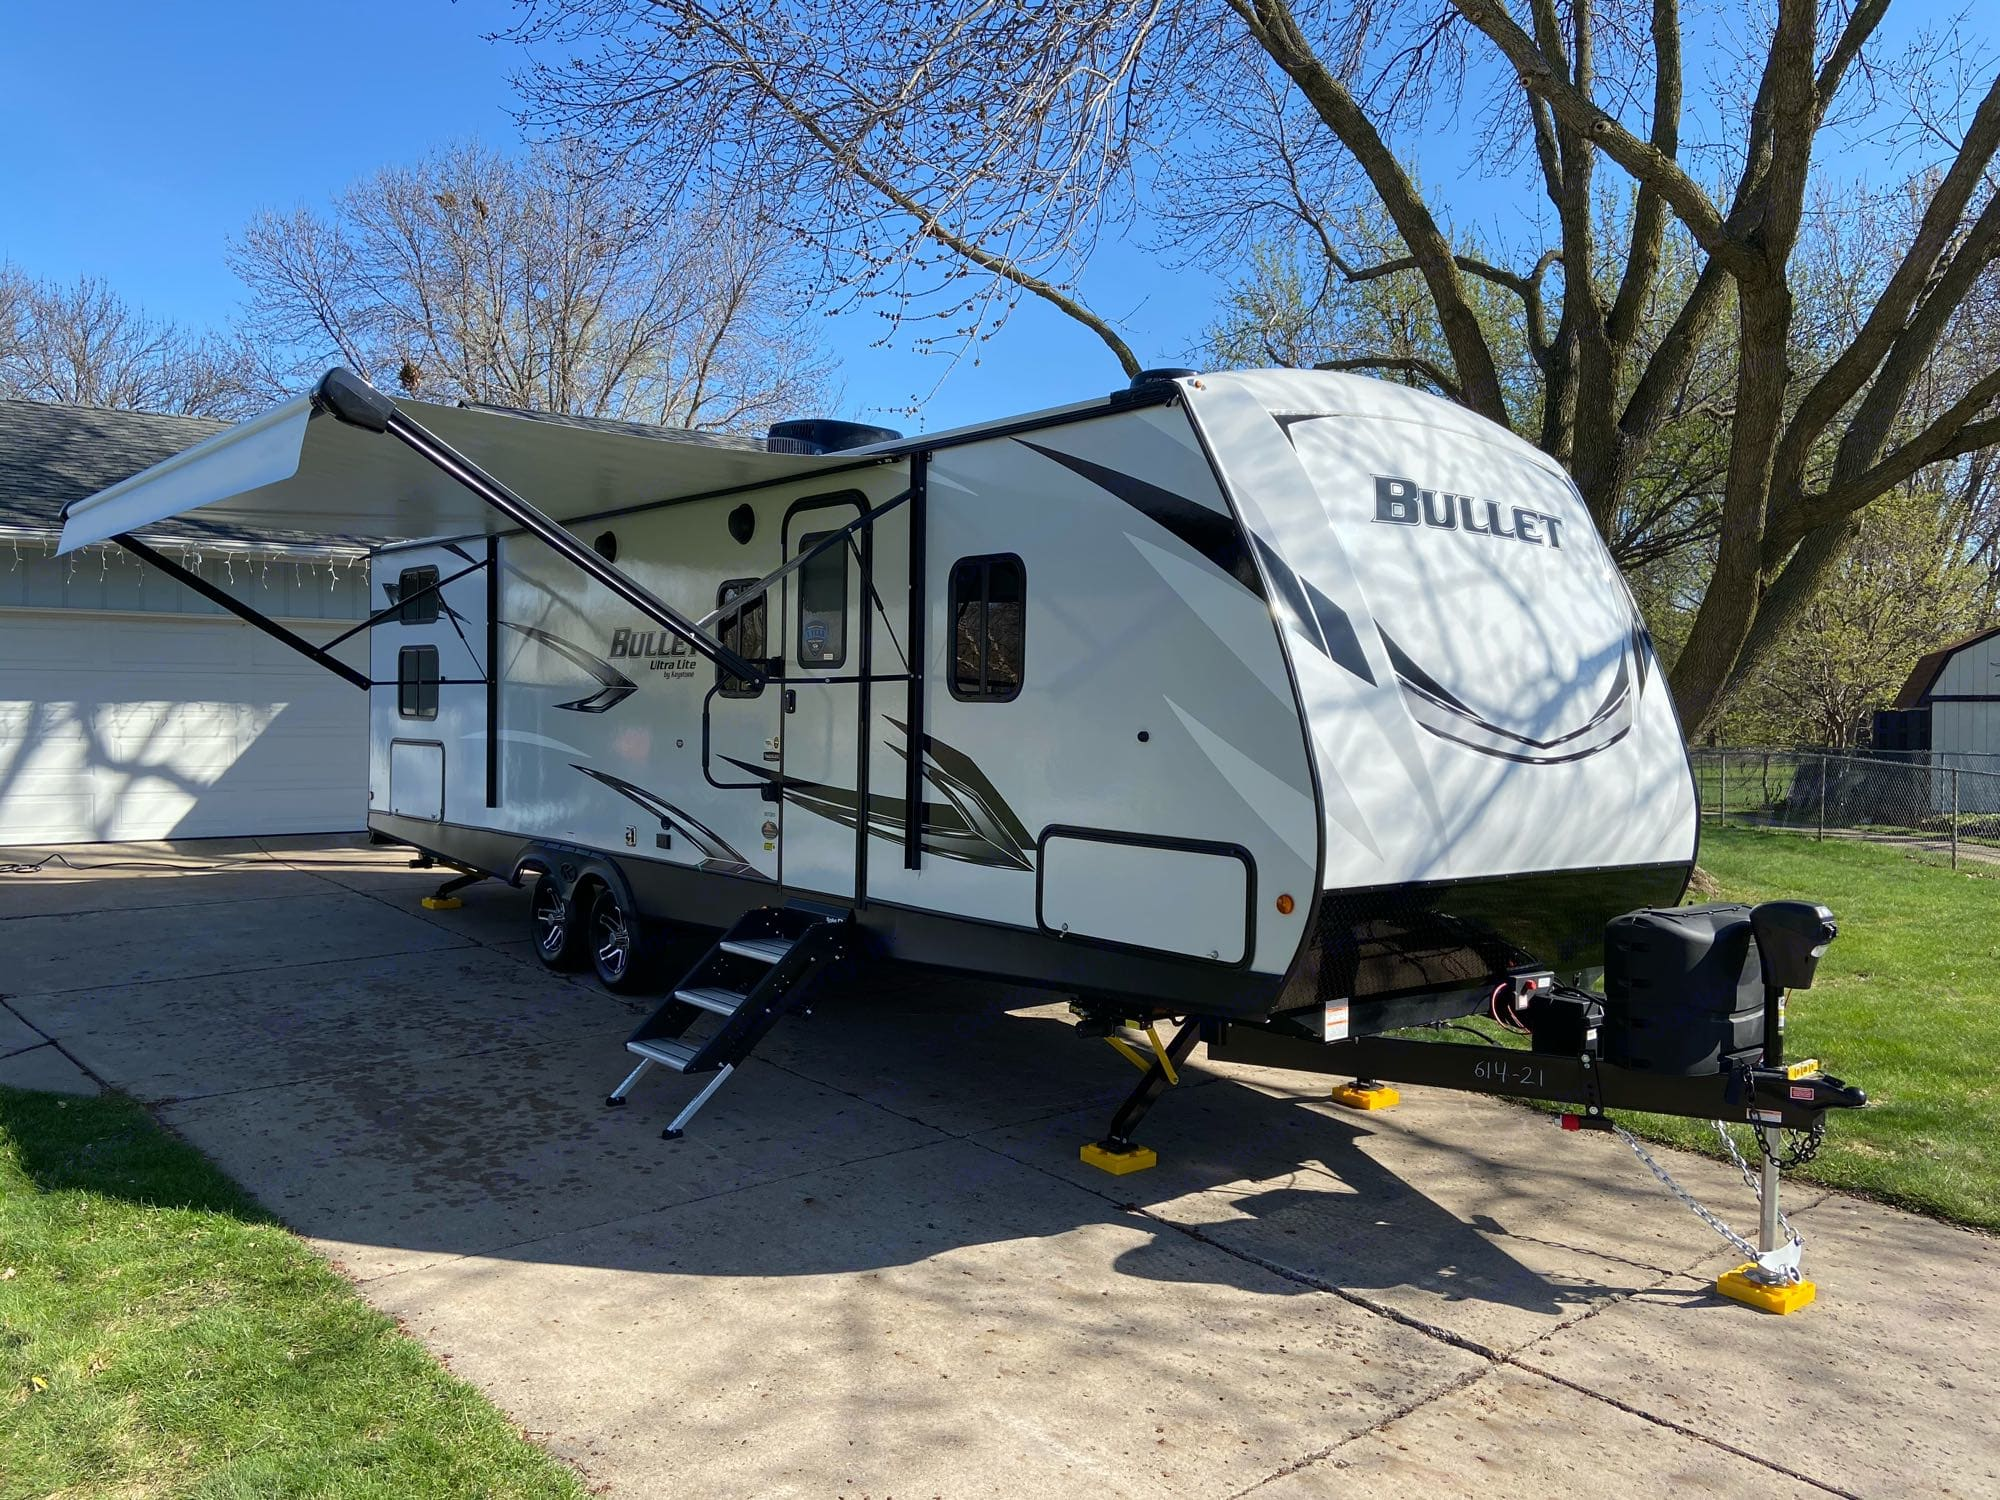 Inside and out, this rig is fully loaded! Power stabilizers, LED lighting, outdoor kitchen, ducted furnace and A/C, and so much more!. Keystone Bullet 2021